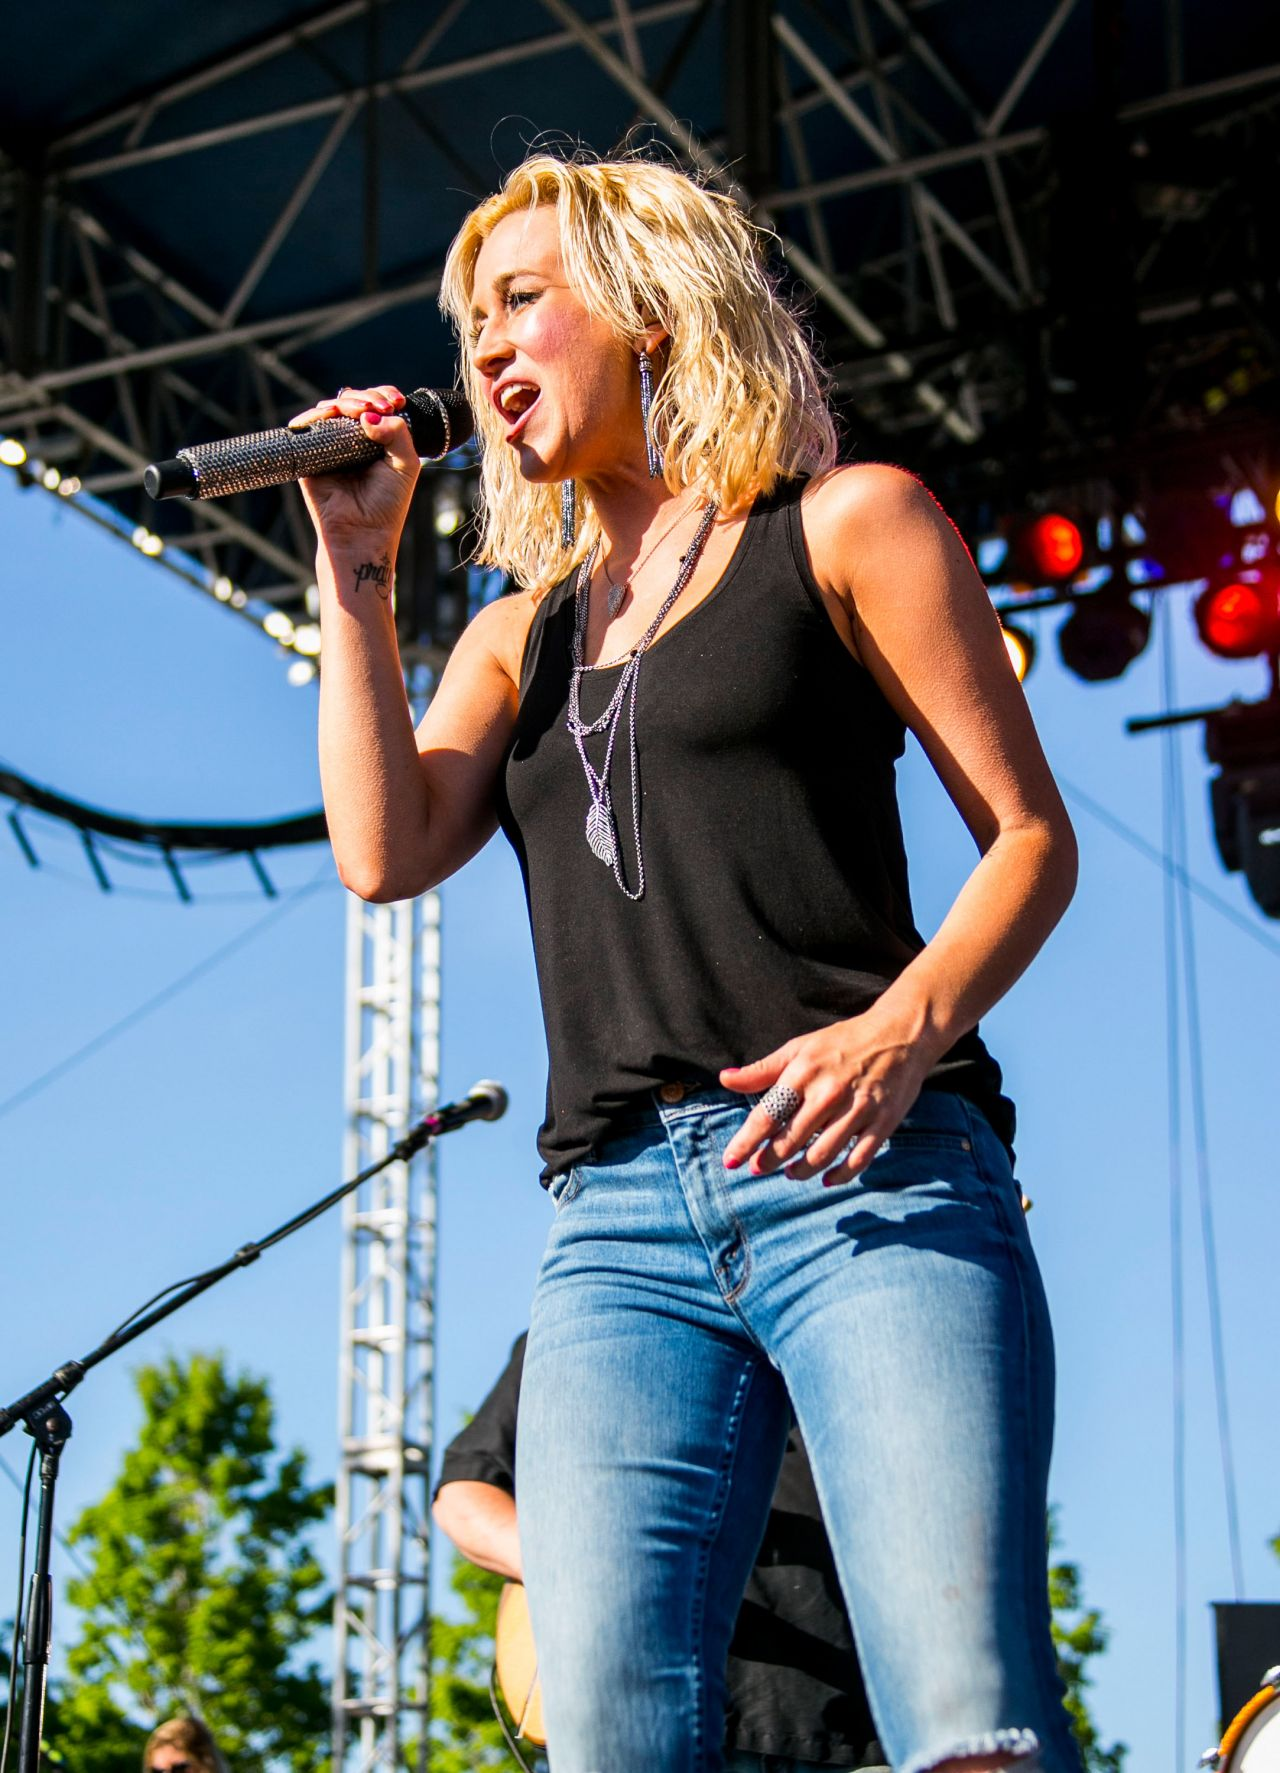 Kellie Pickler Performs at 2014 WYCD Downtown Hoedown in Detroit